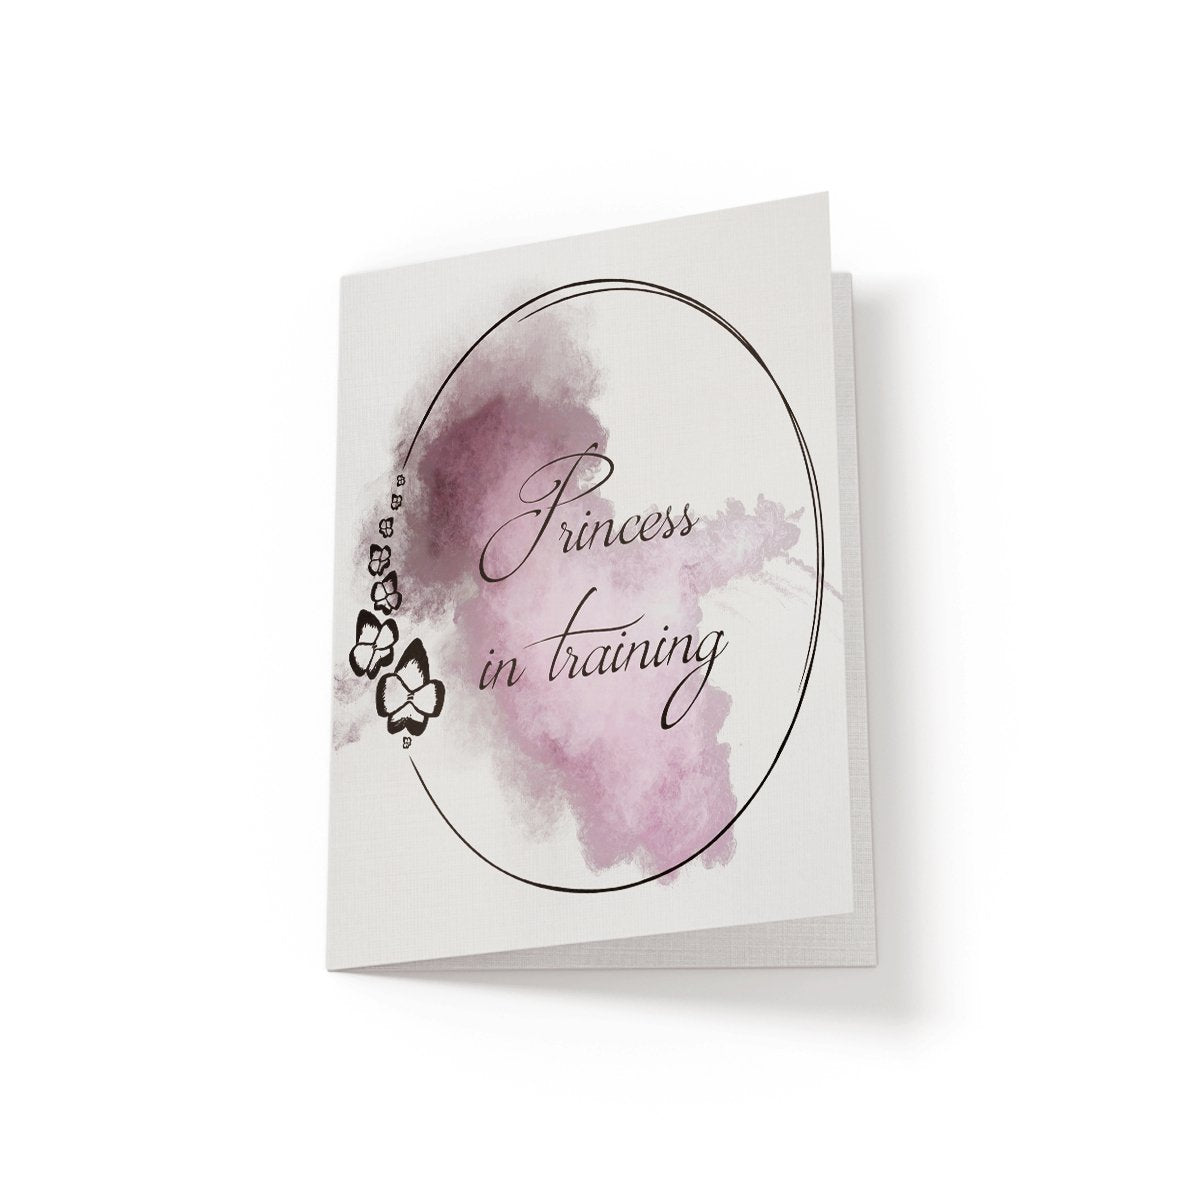 Princess in training - Greeting Card - Netties Expressions